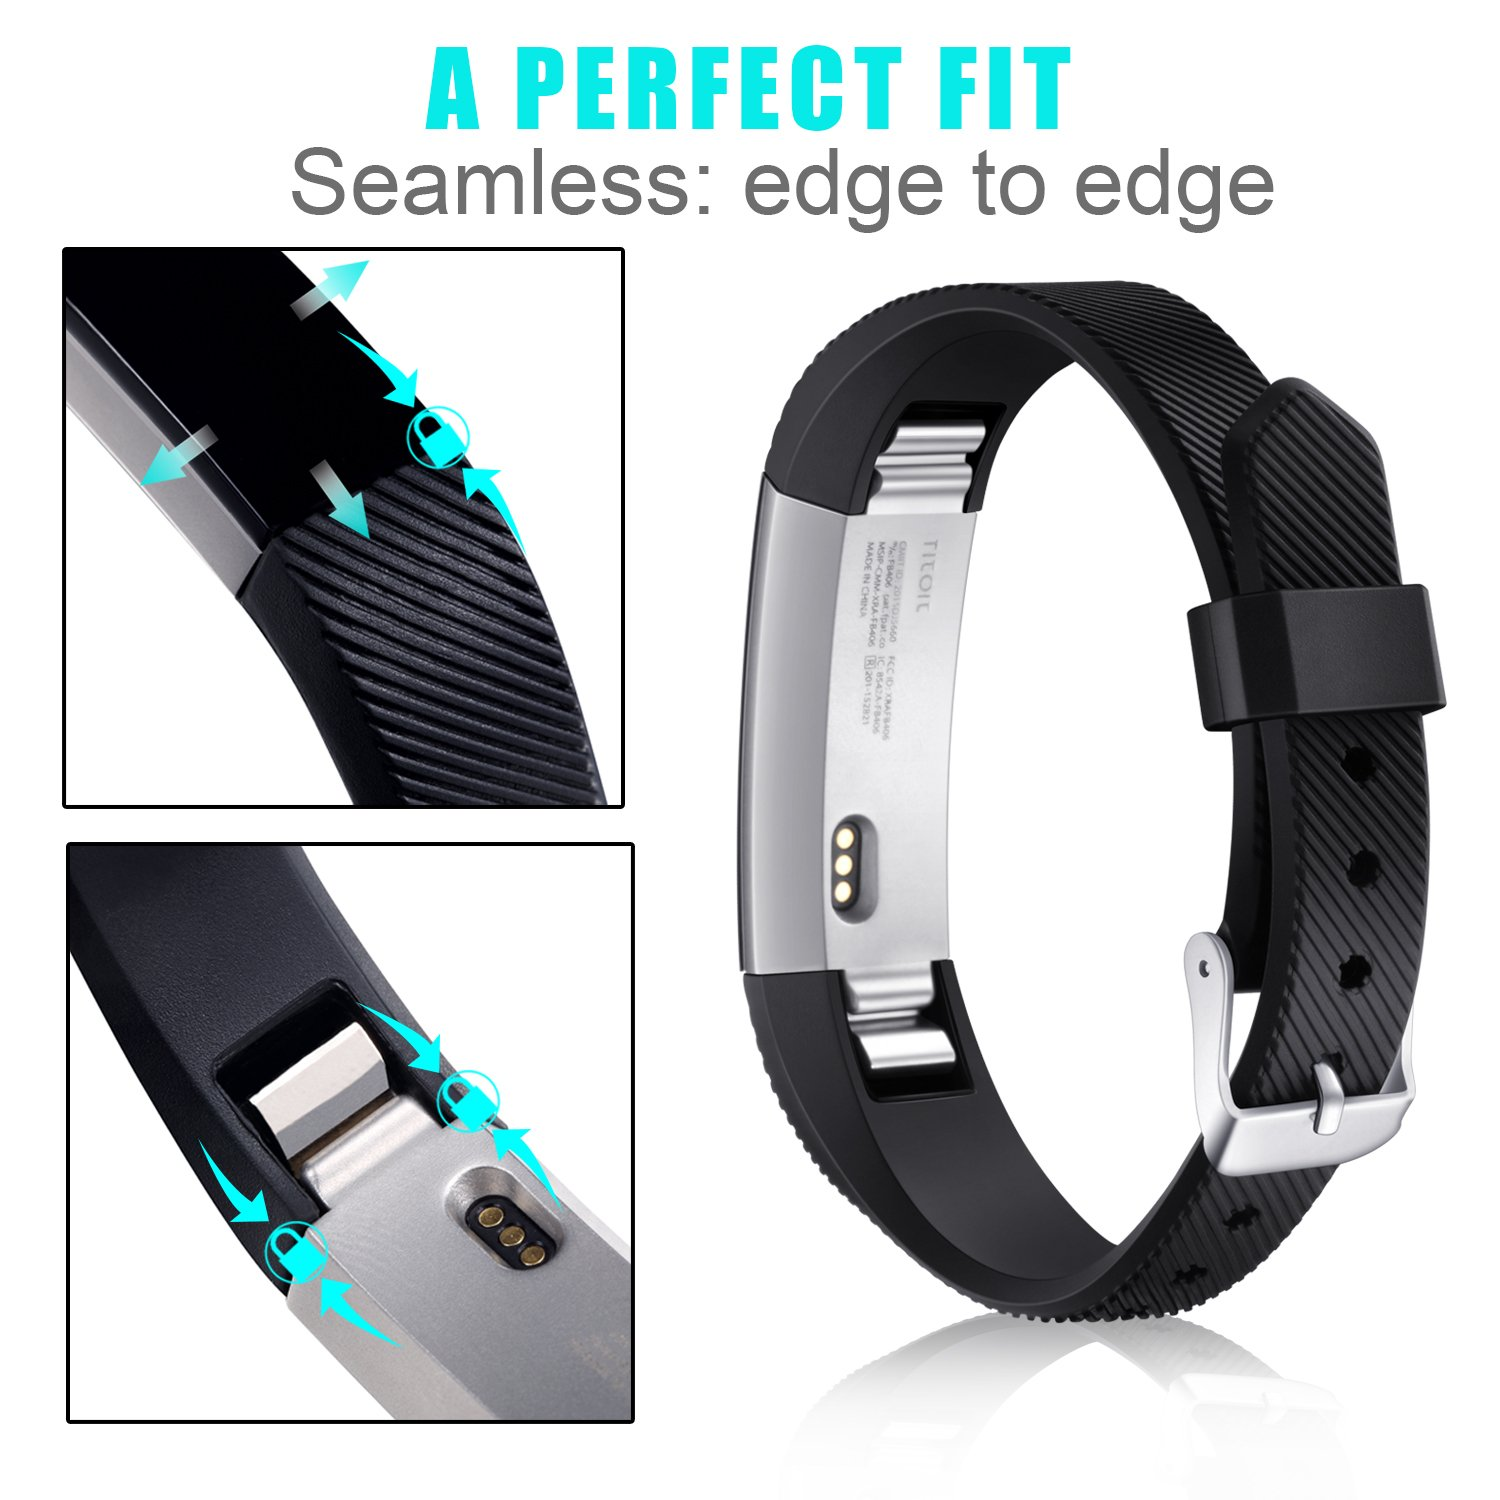 Fitbit Konikit Adjustable Replacement Accessory Image 2